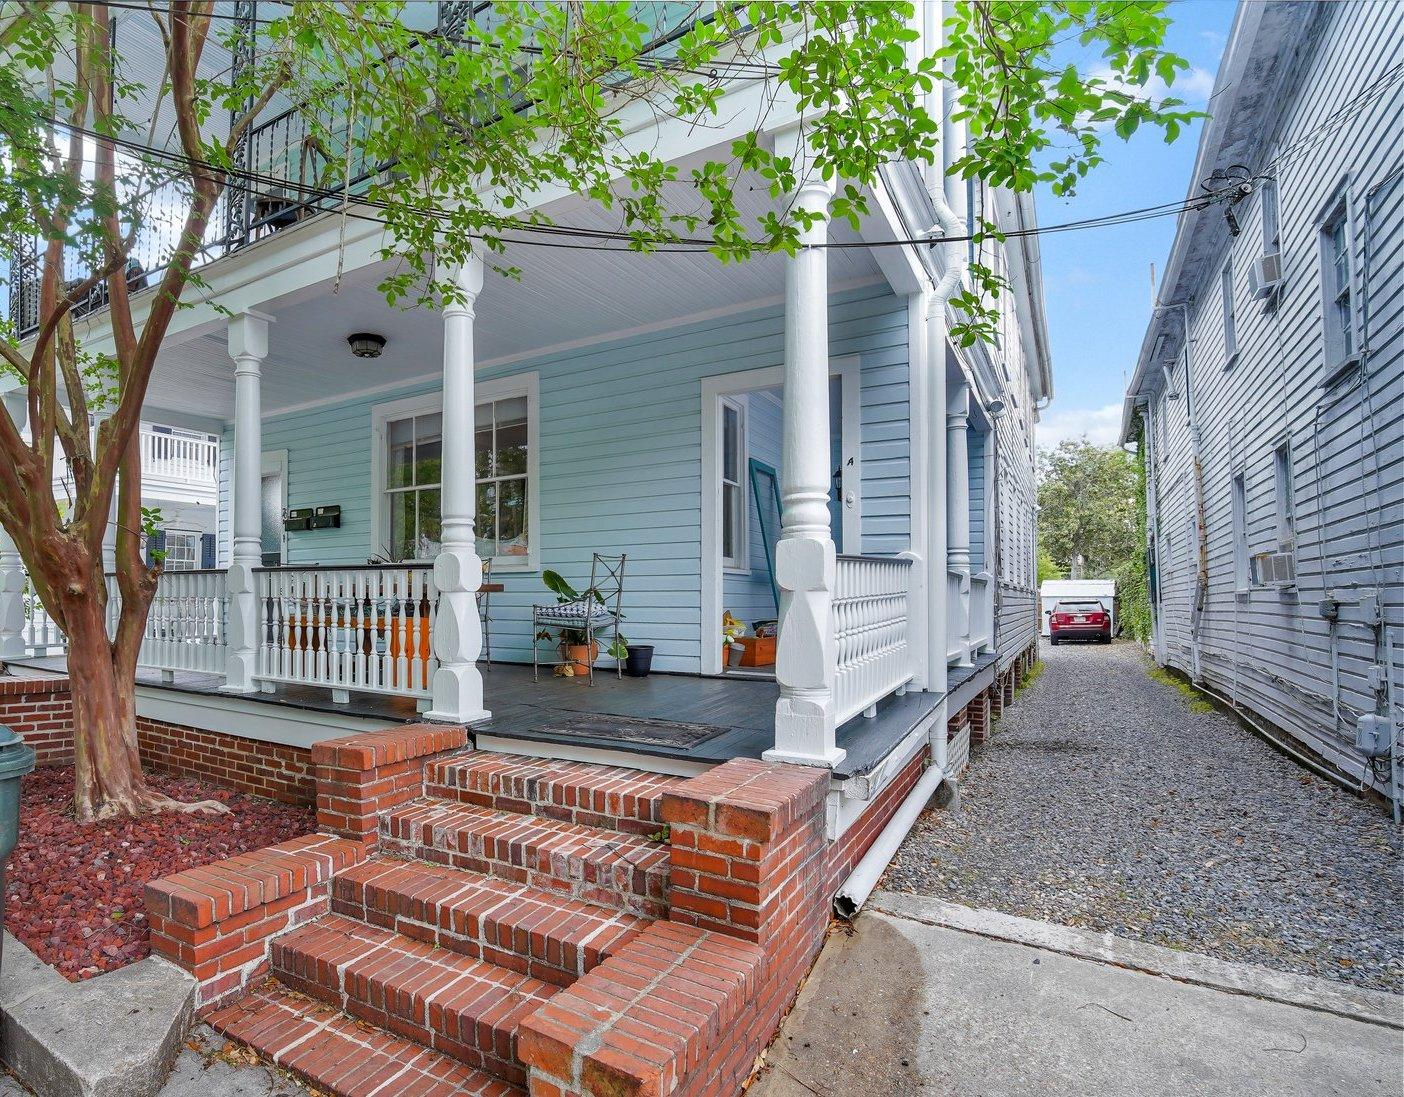 76 Smith Street, Charleston, 29401, ,MultiFamily,For Sale,Smith,21011819